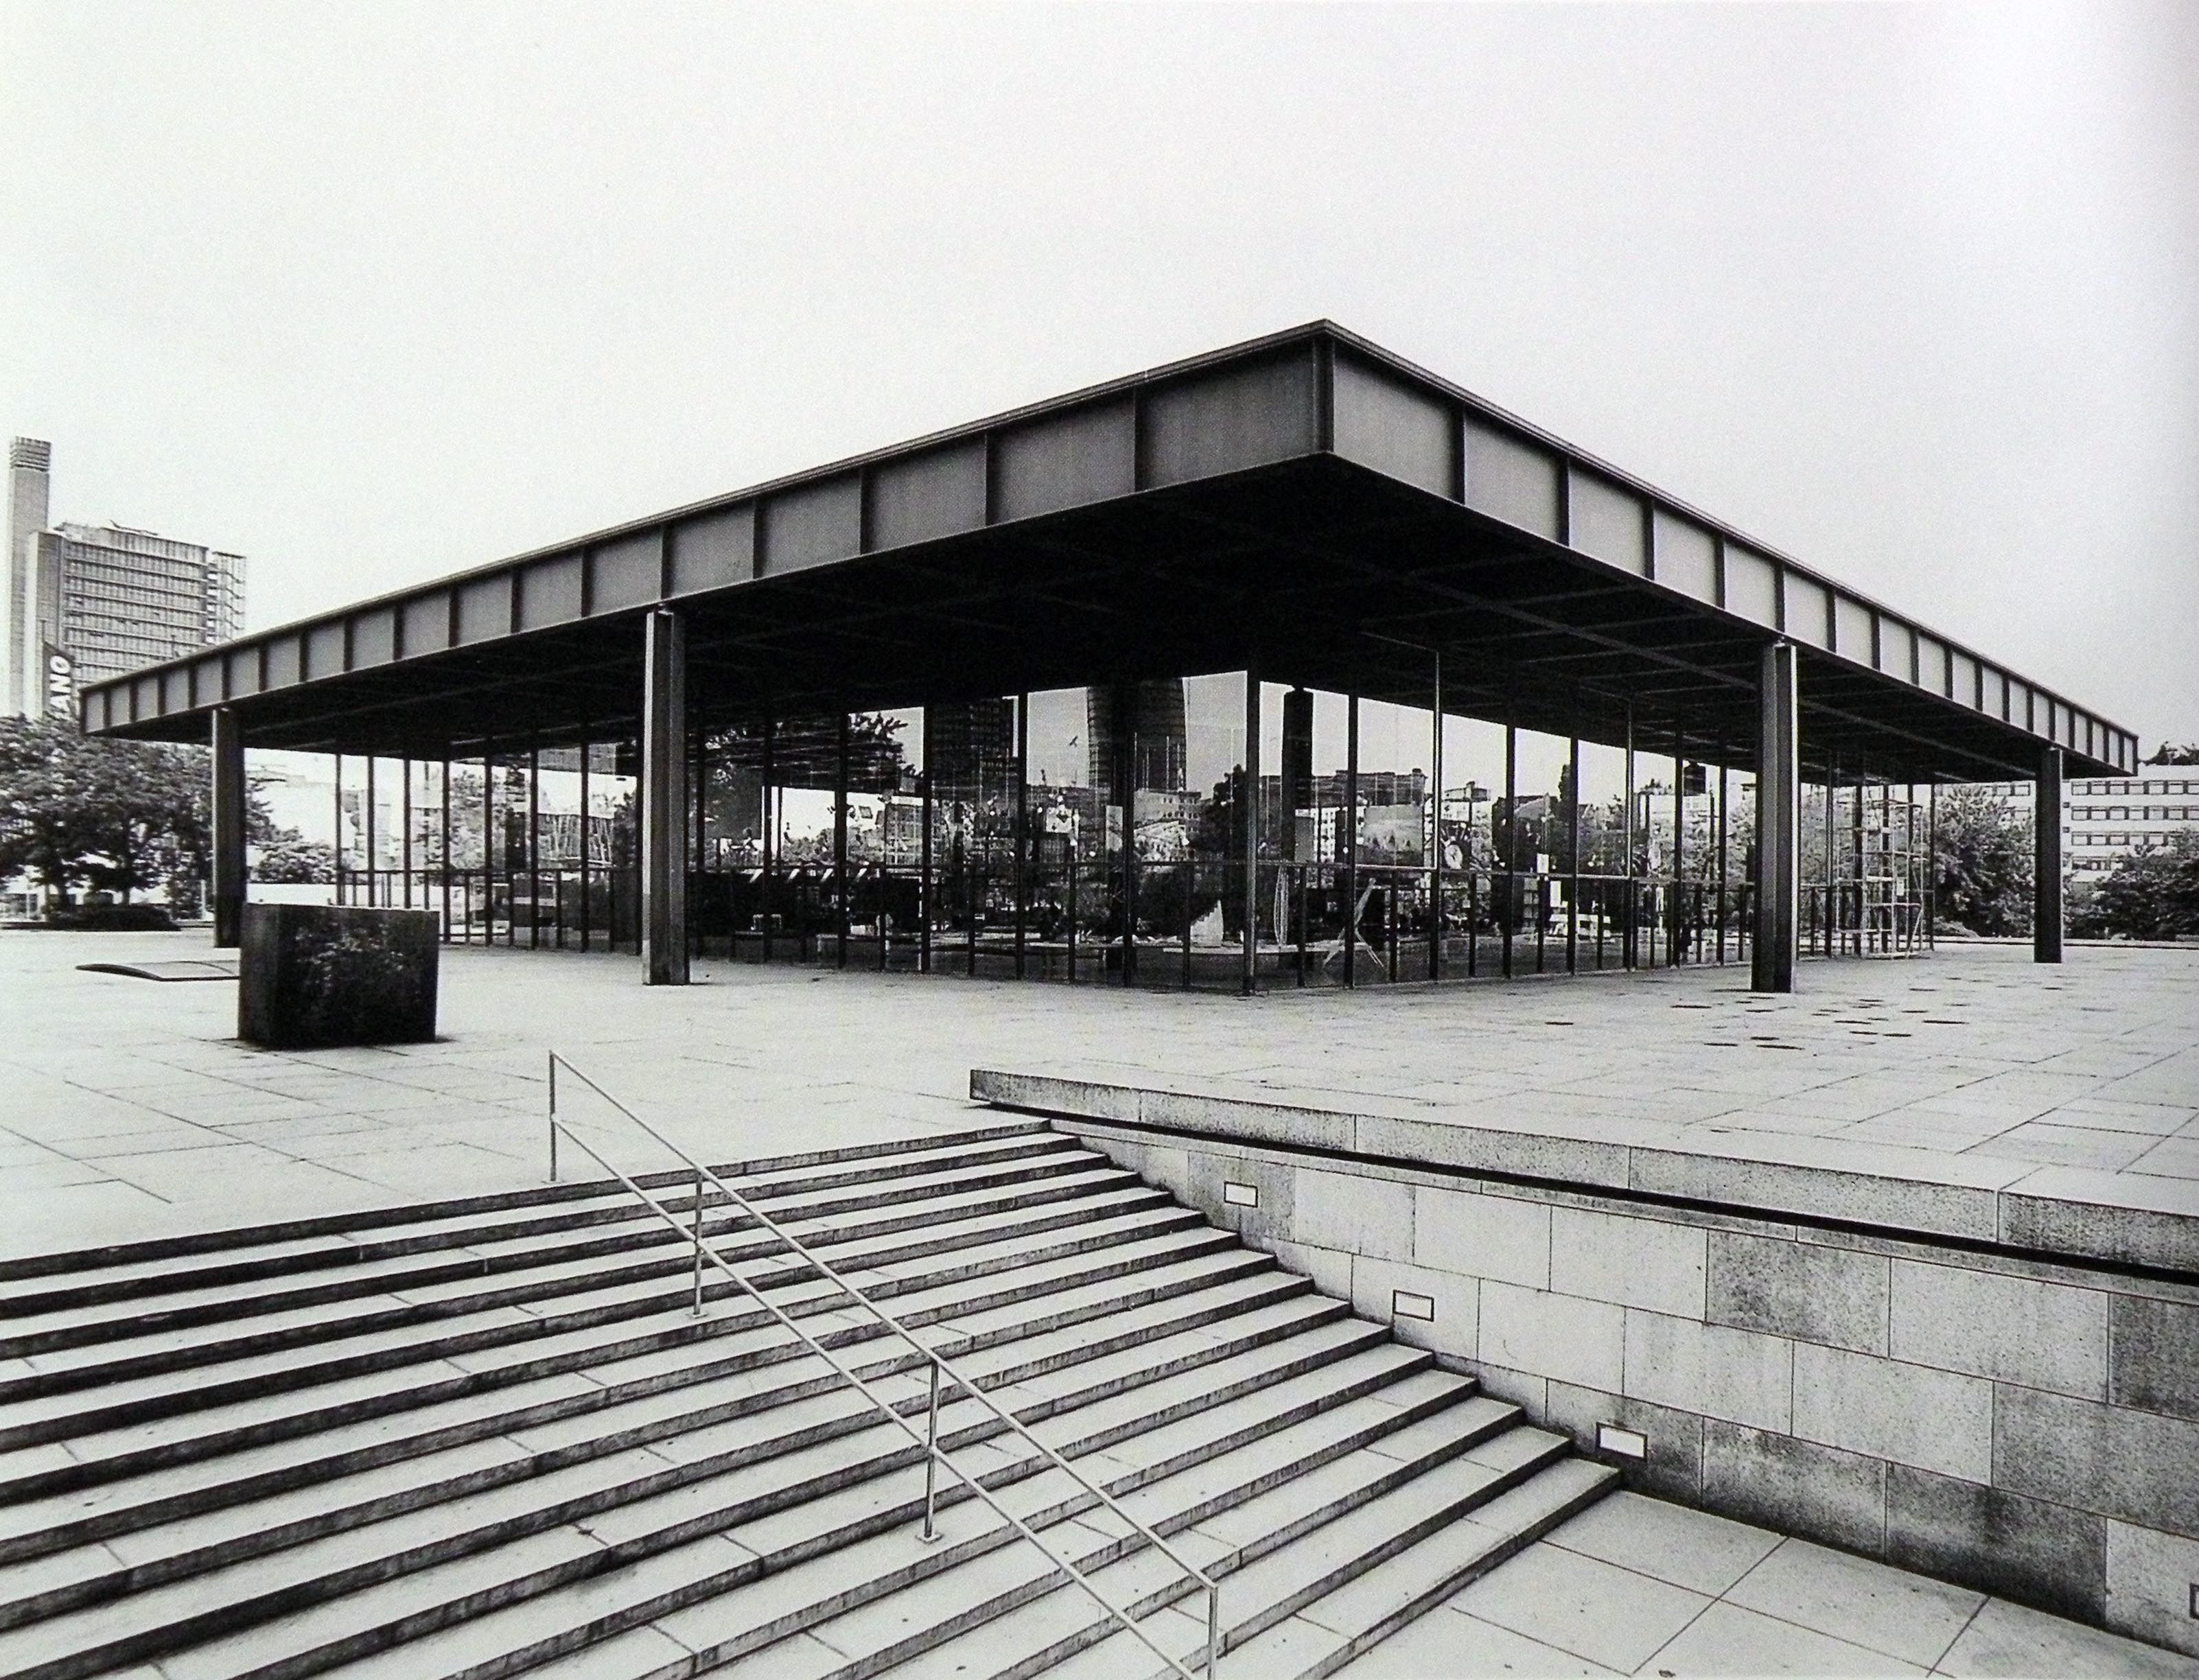 mies van der rohe neue nationalgalerie berlino 1962. Black Bedroom Furniture Sets. Home Design Ideas